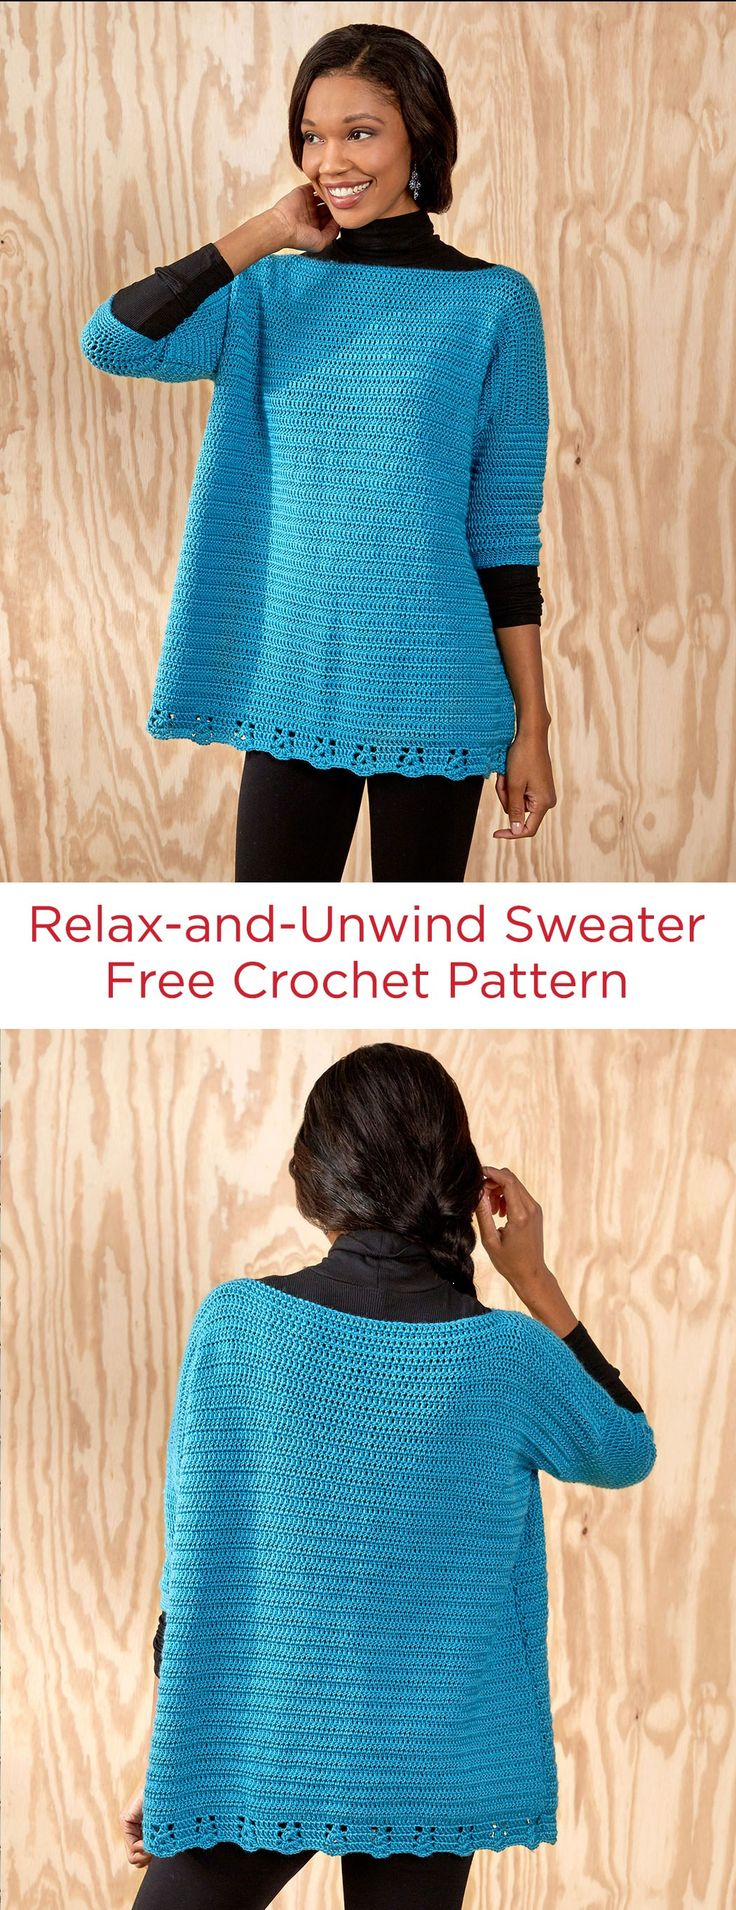 Relax-and-Unwind Sweater Free Crochet Pattern in Red Heart Yarns -- This crochet sweater gives you a roomy, relaxed attitude while looking great! Lower border detail adds just the right finish with easy cluster stitches. Lightweight yarn can be worn with a tank in warmer weather or a turtleneck in cooler weather. Pattern is given for sizes X-Small to 3X.